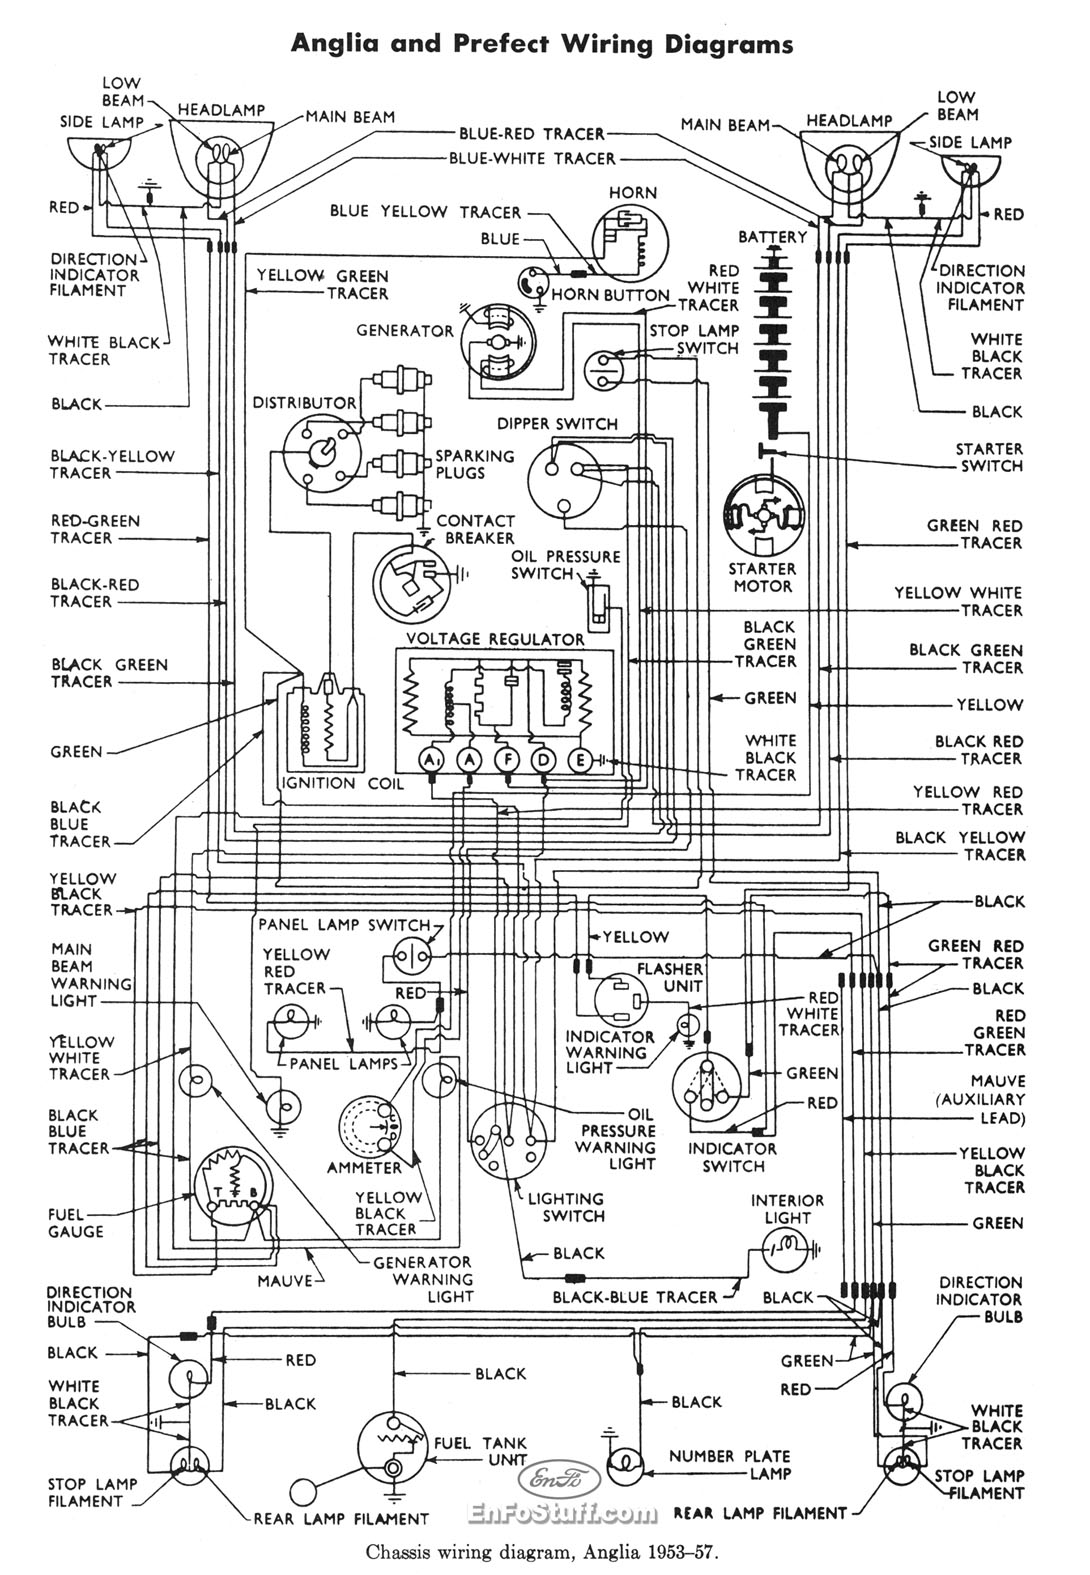 Wiring Diagram For Ford Anglia 57